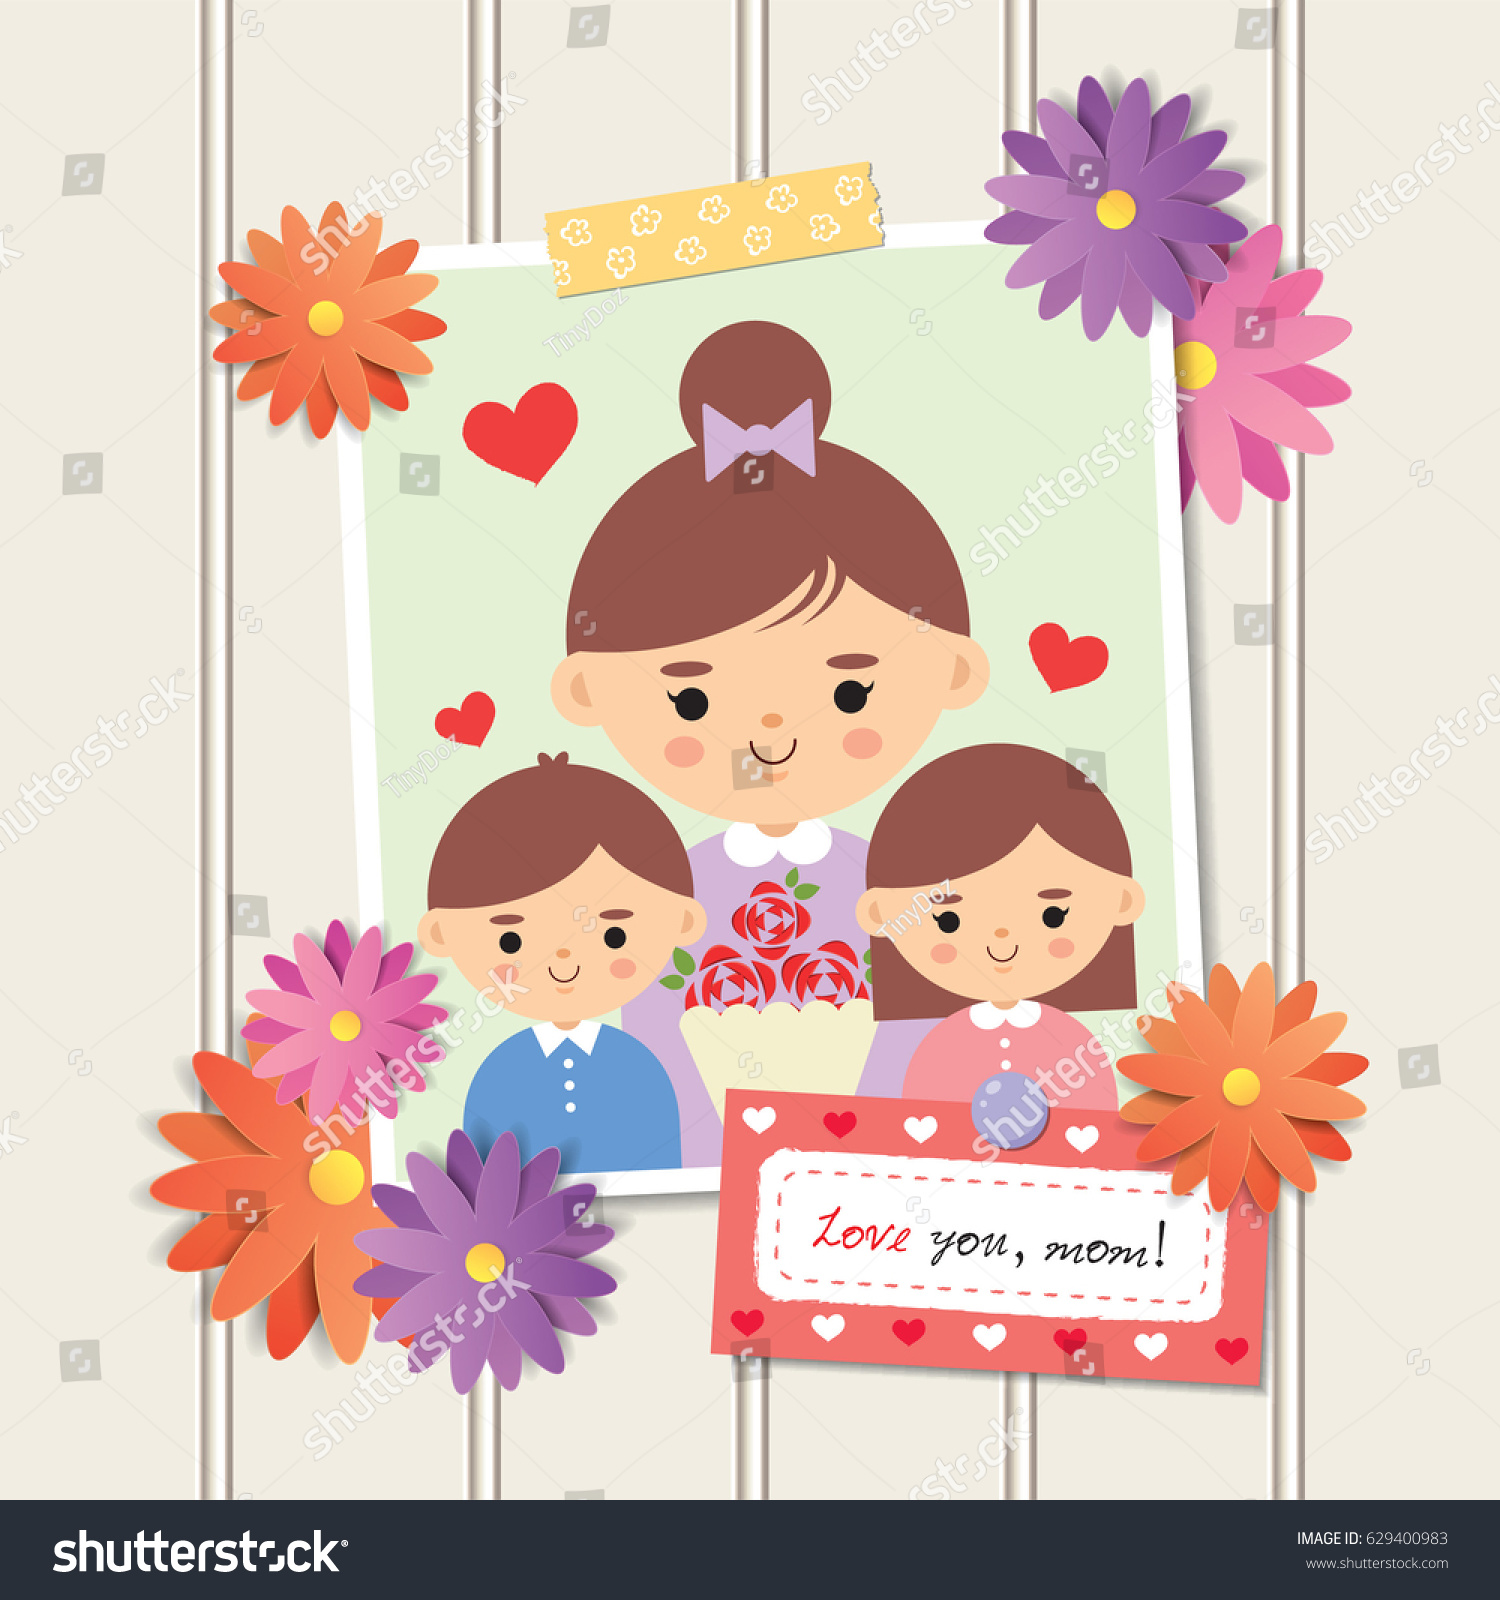 Happy Mothers Day Photo Cartoon Mother Stock Vector Royalty Free